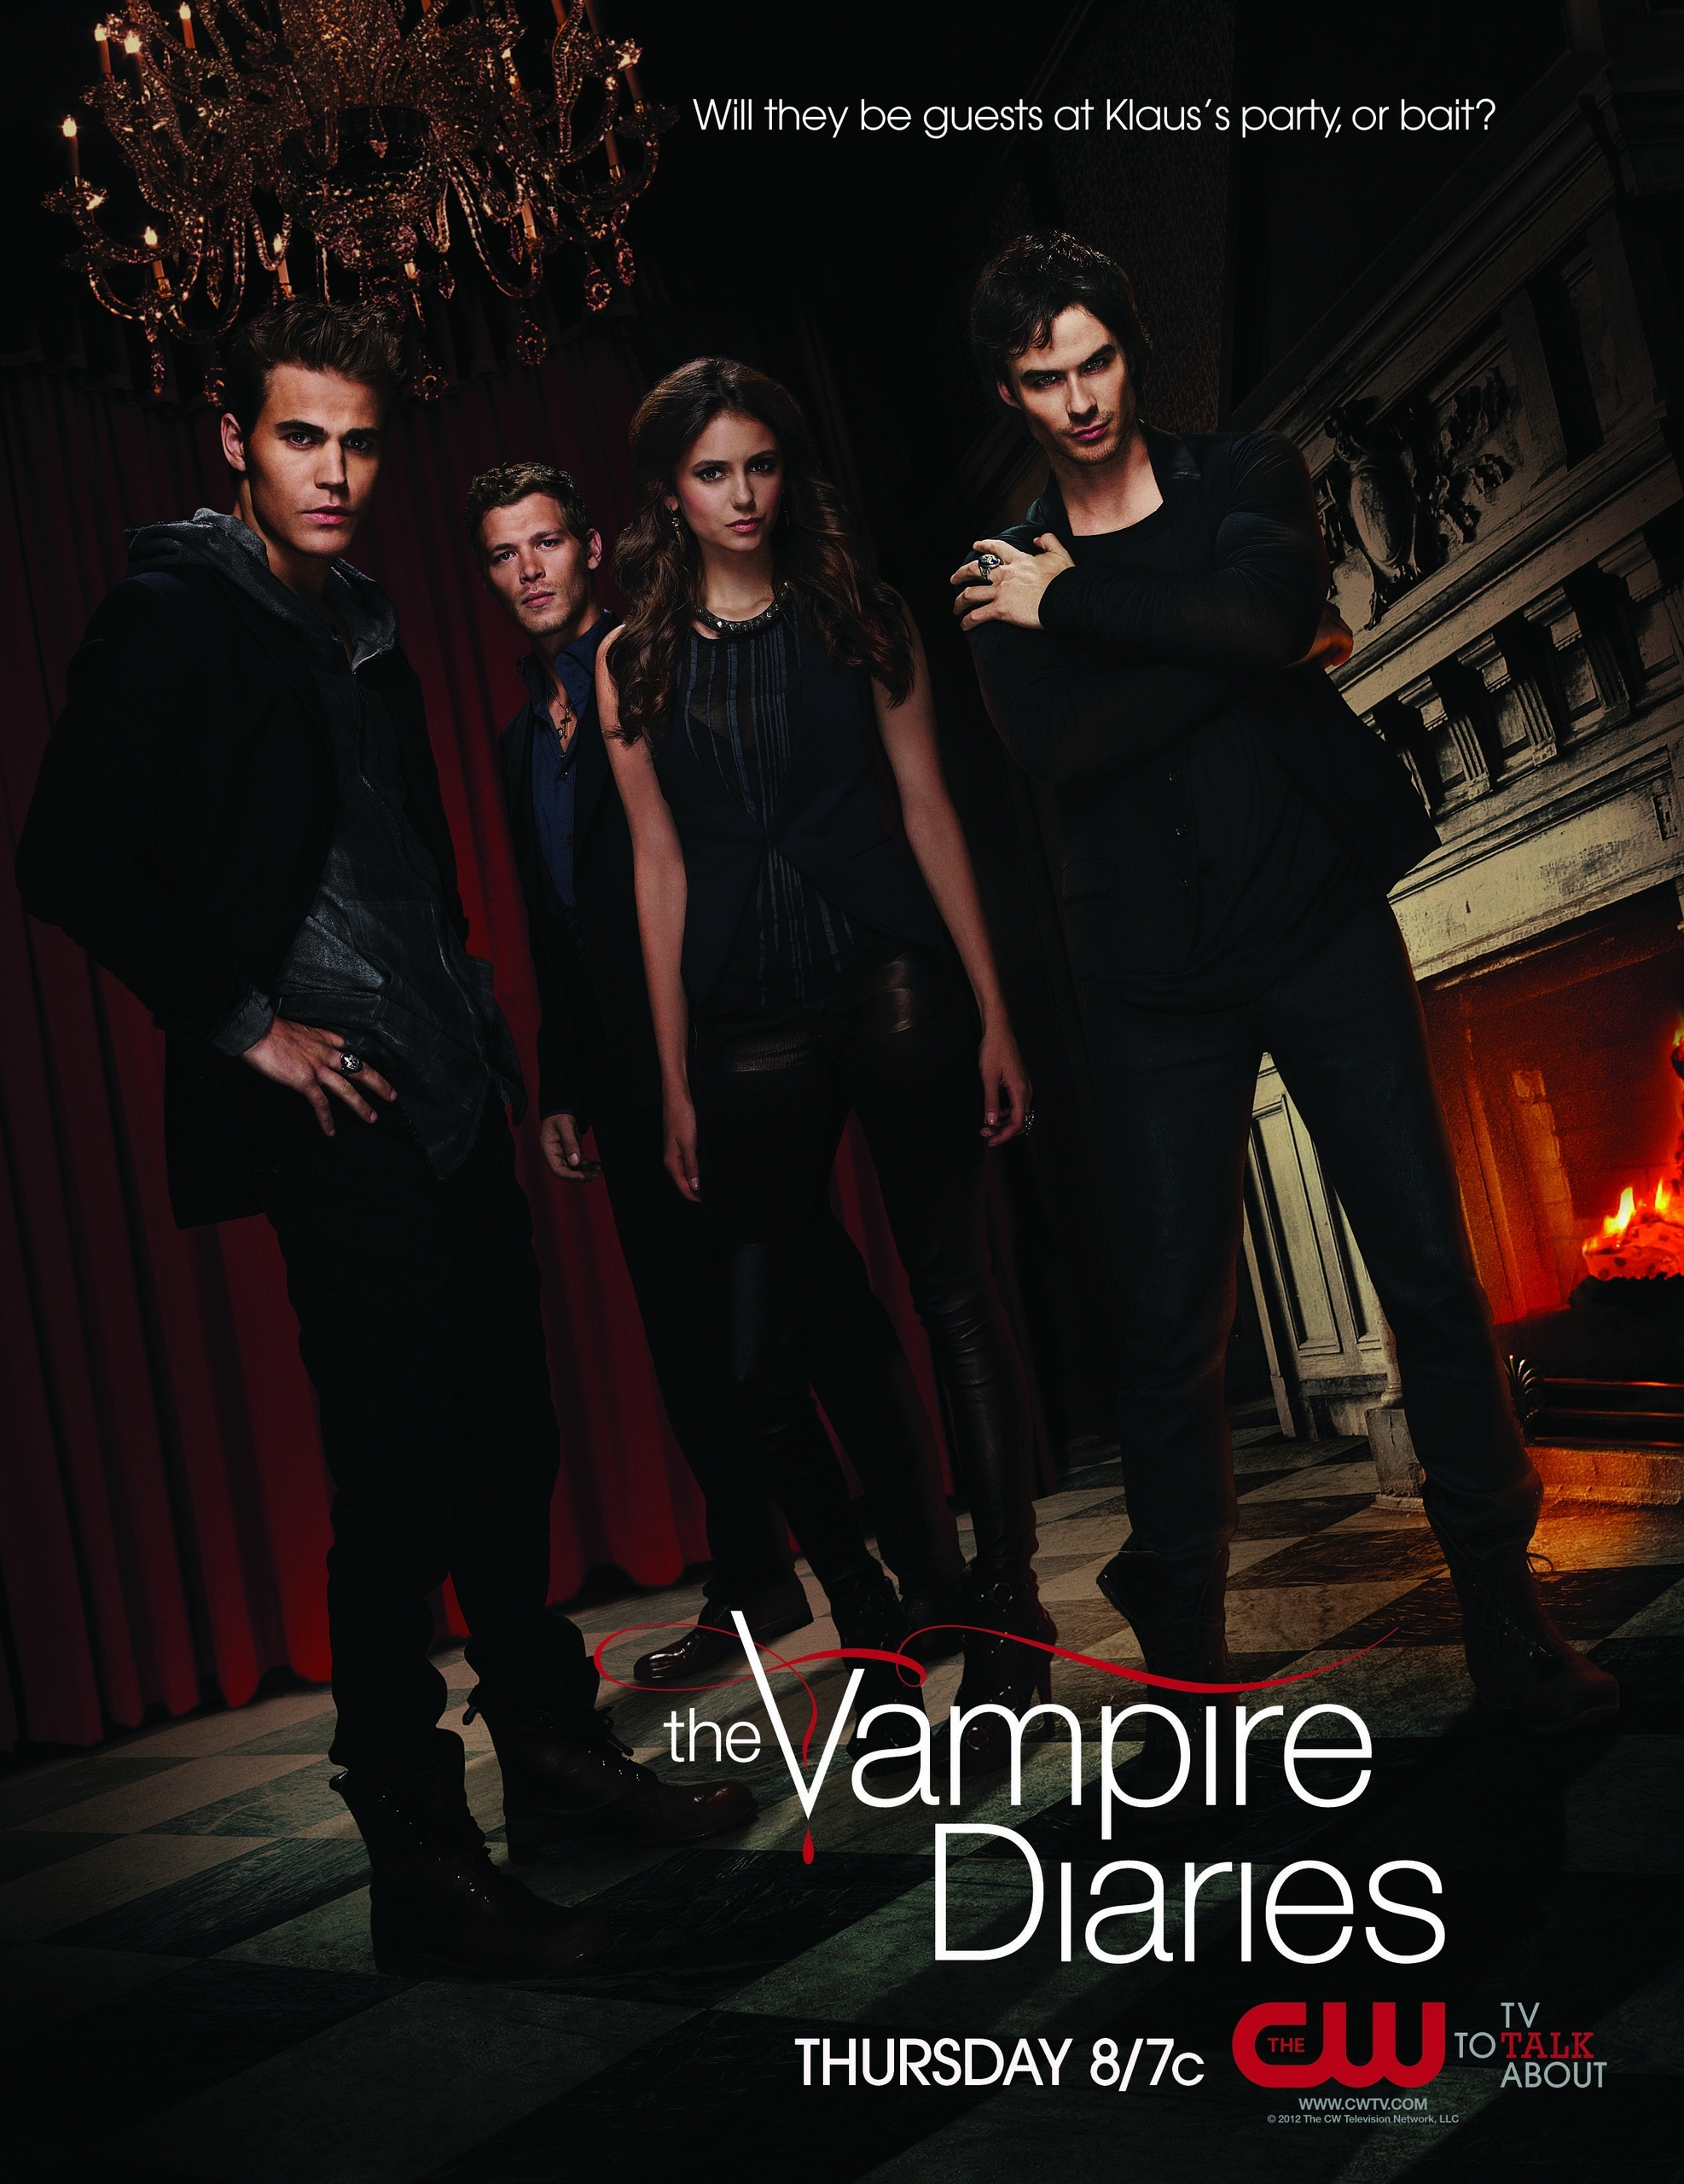 Vampire Diaries Netflix Poster TV SHOWS